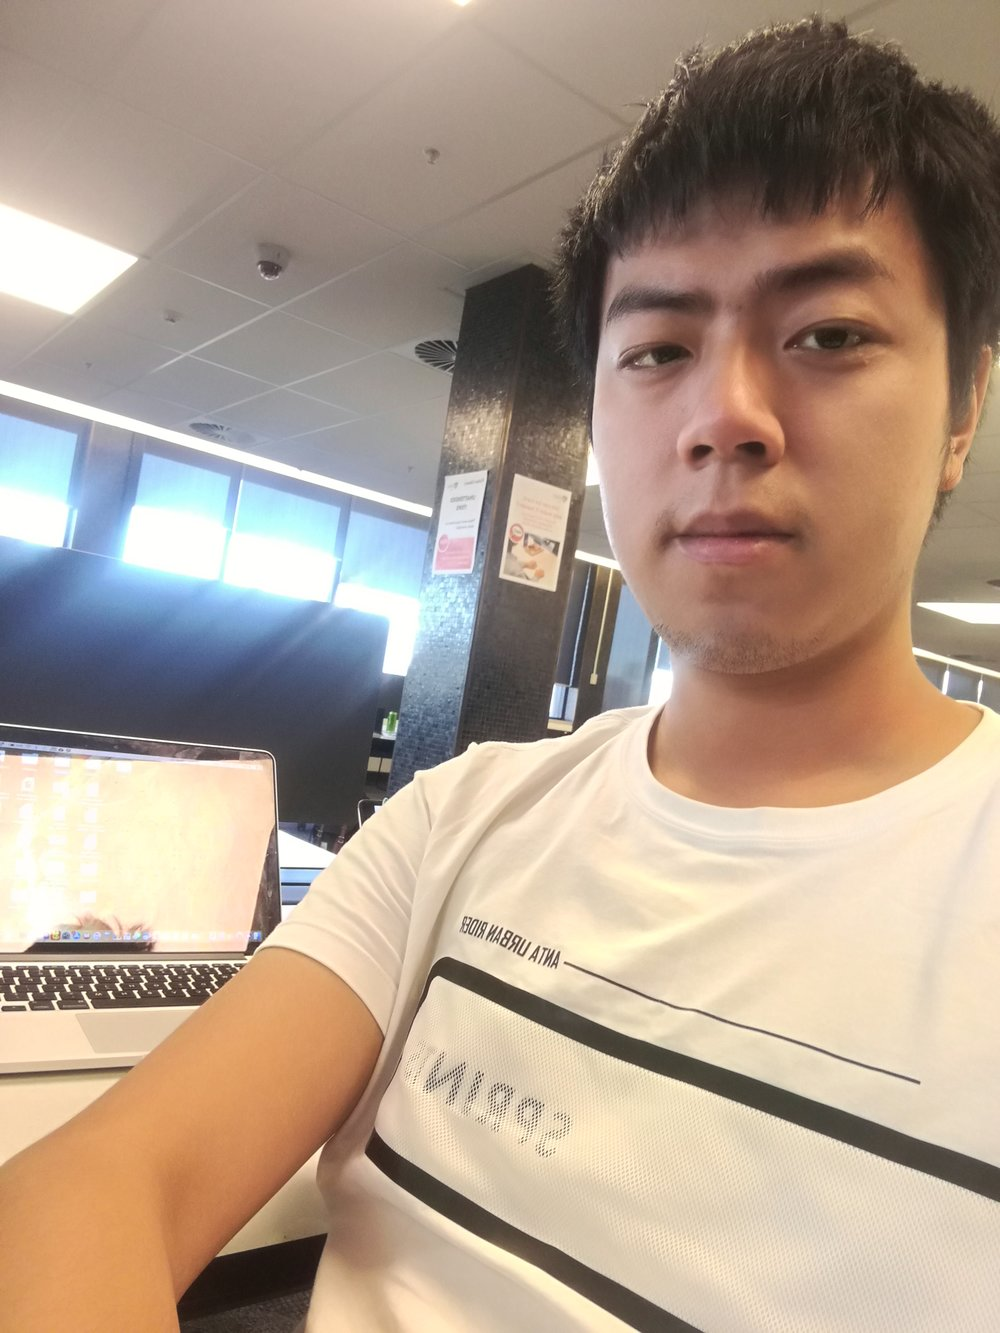 Rui Cao is a master student in the university of Sydney supervised by professor Jaime Gongora. He is working on the population genetics in Australian freshwater crocodile Crocodylus johsntoni.